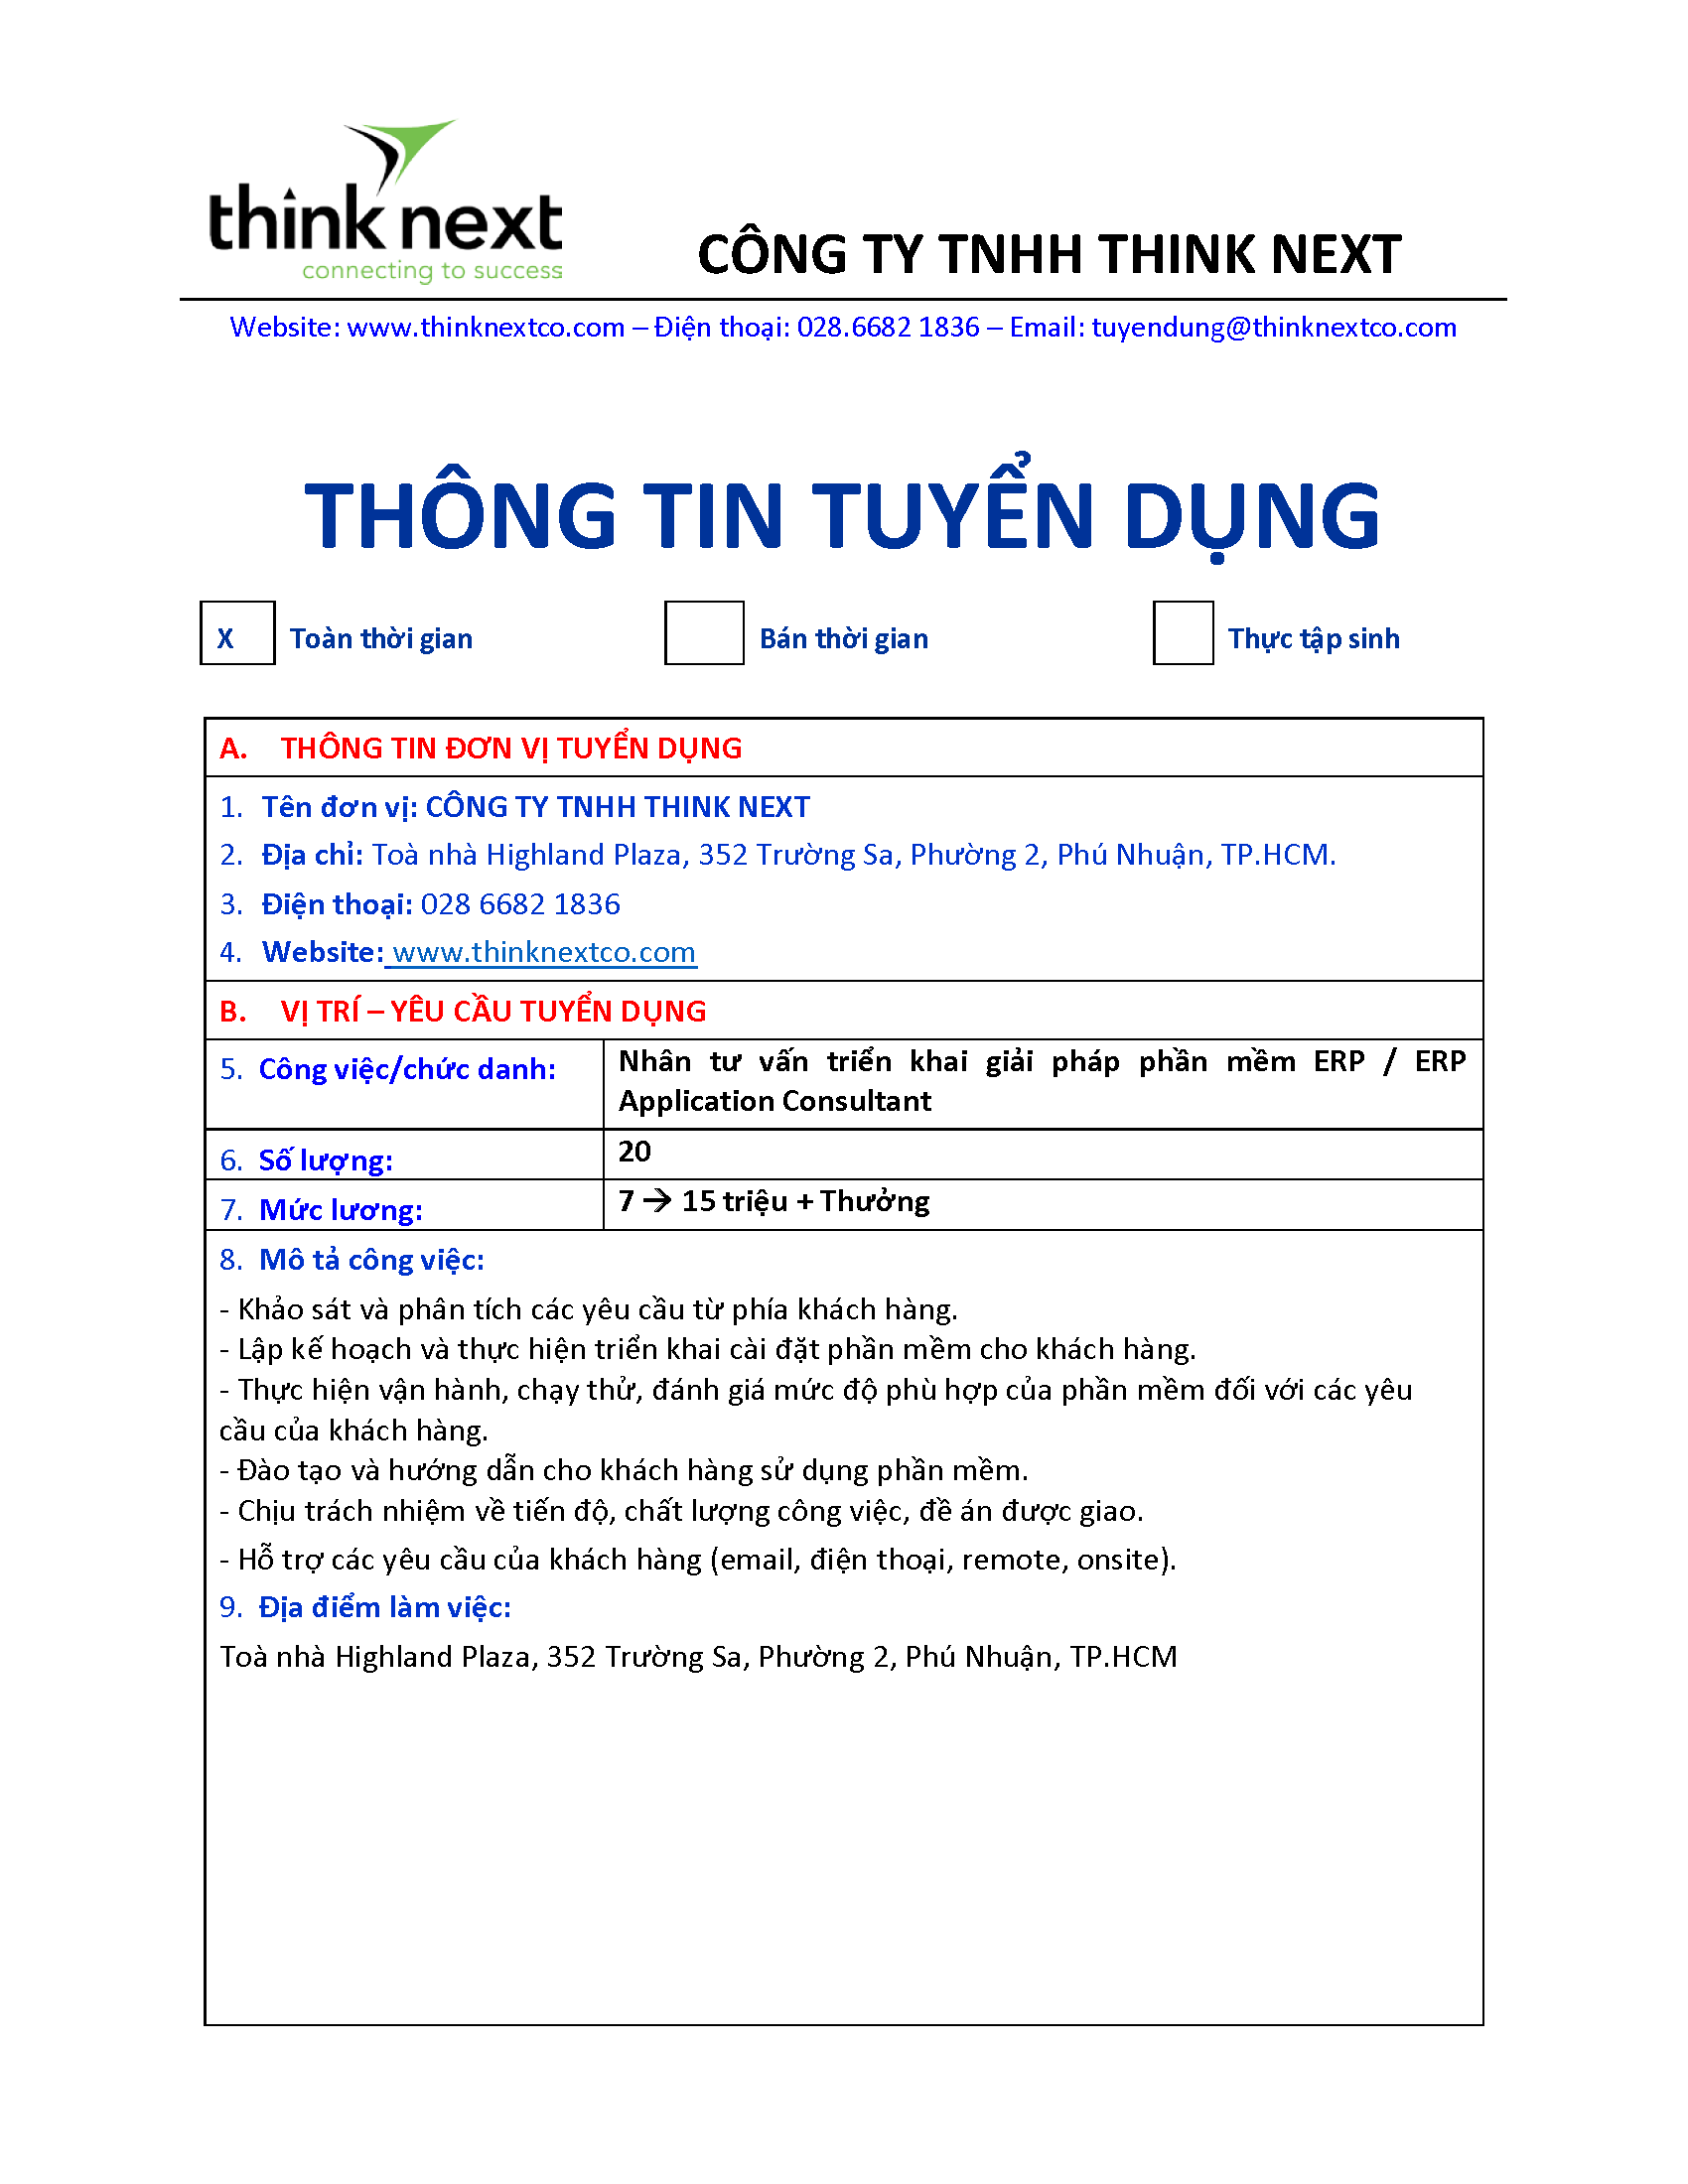 CTY THINK NEXT-THONG TIN TUYEN DUNG DOANH NGHIEP_Consultant ERP_Page_1